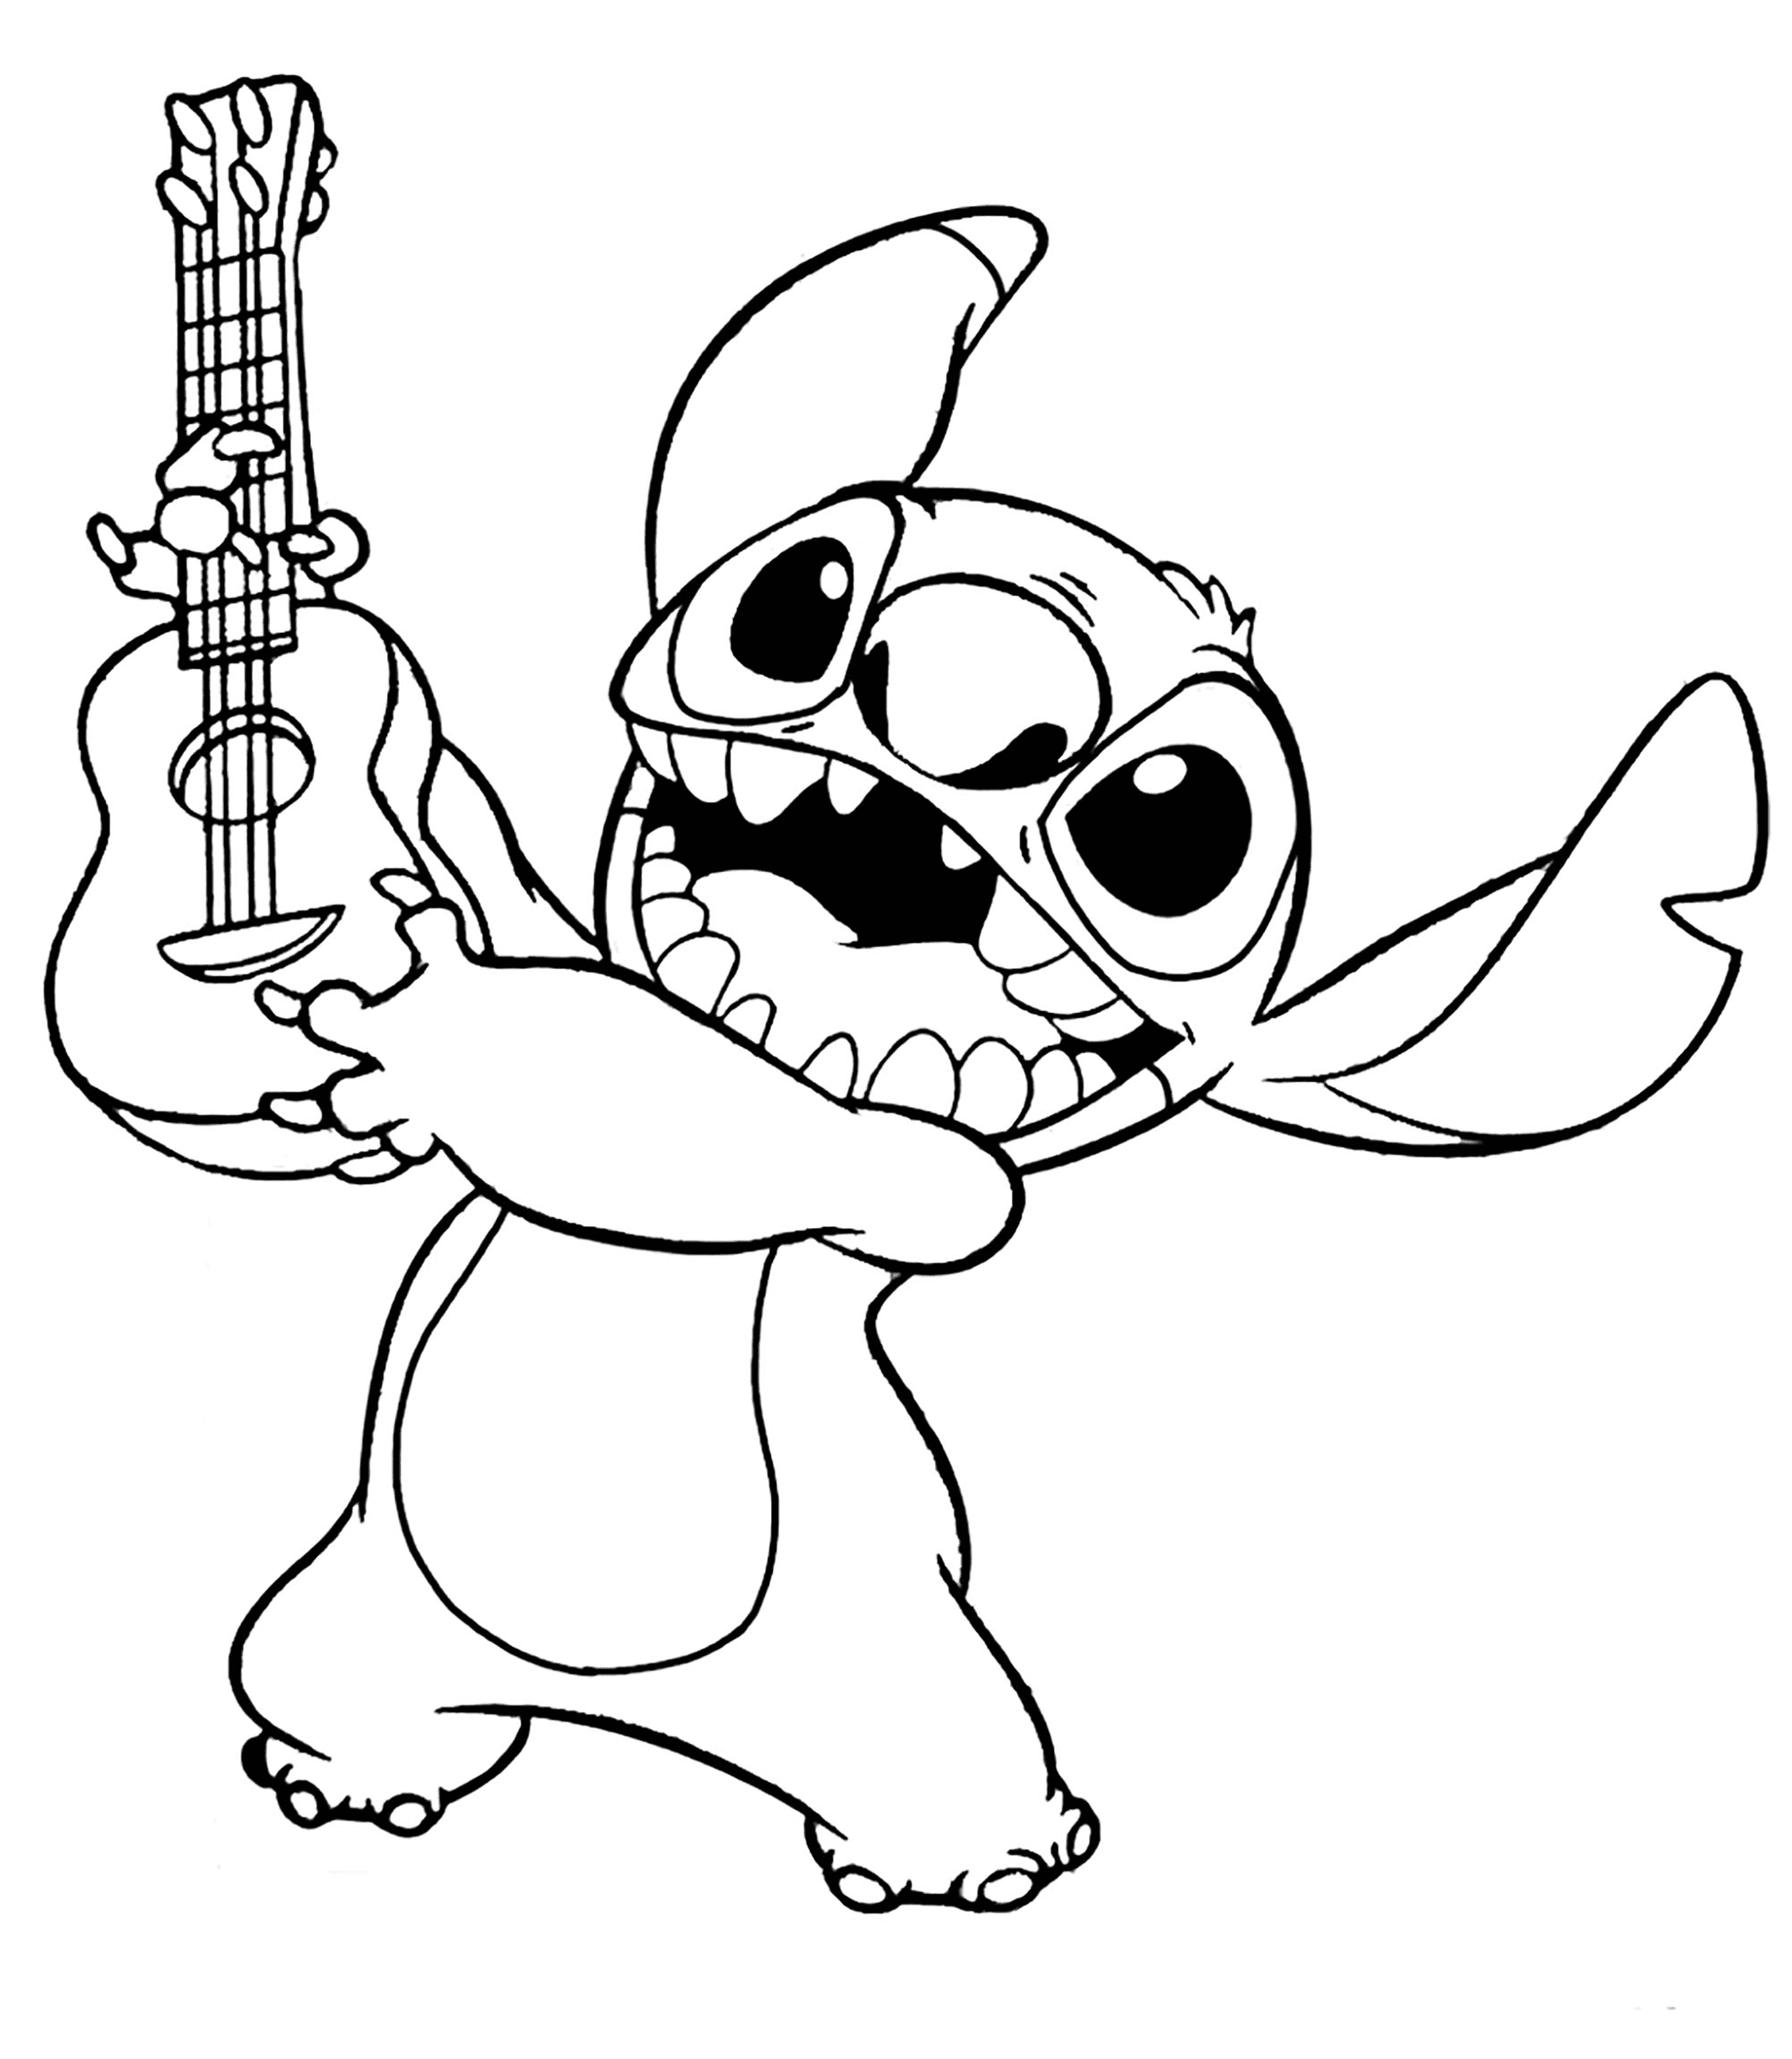 Stitch with Guitar Coloring Page